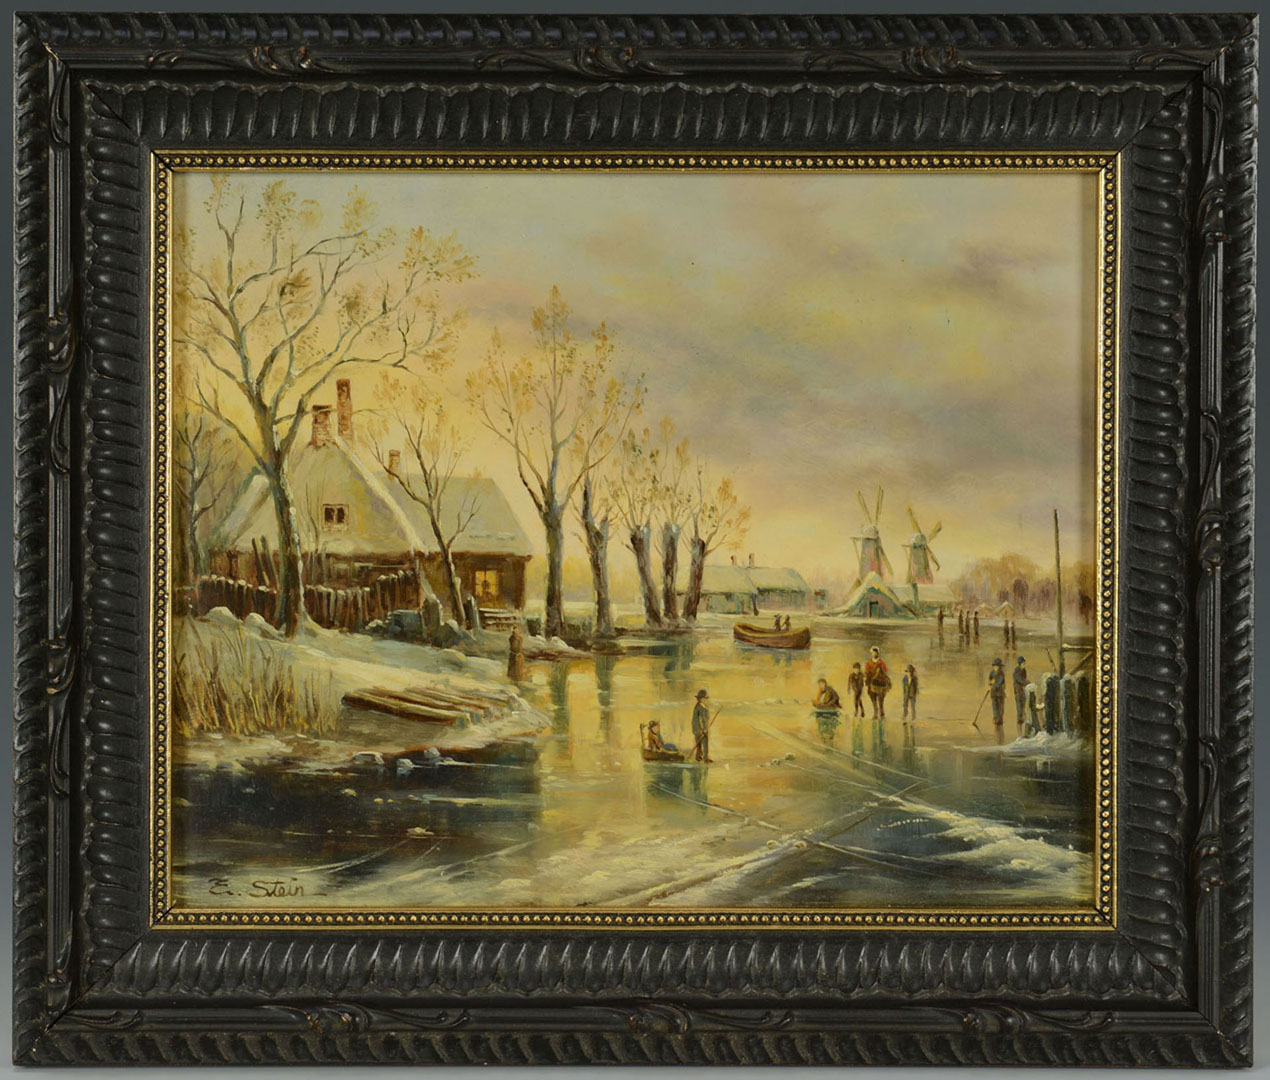 Lot 2872264: Dutch School Winter Landscape, signed E. Stein